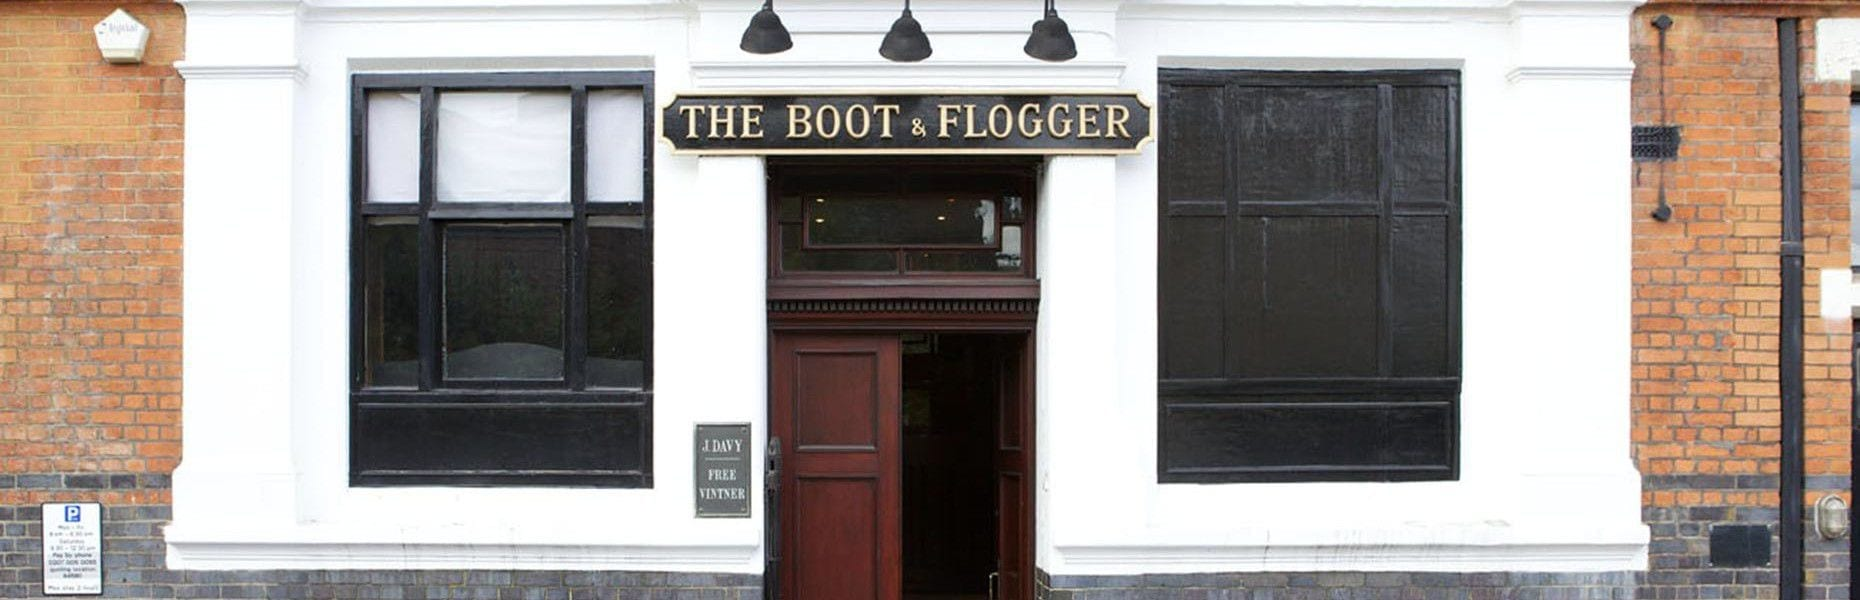 Boot & Flogger entrance